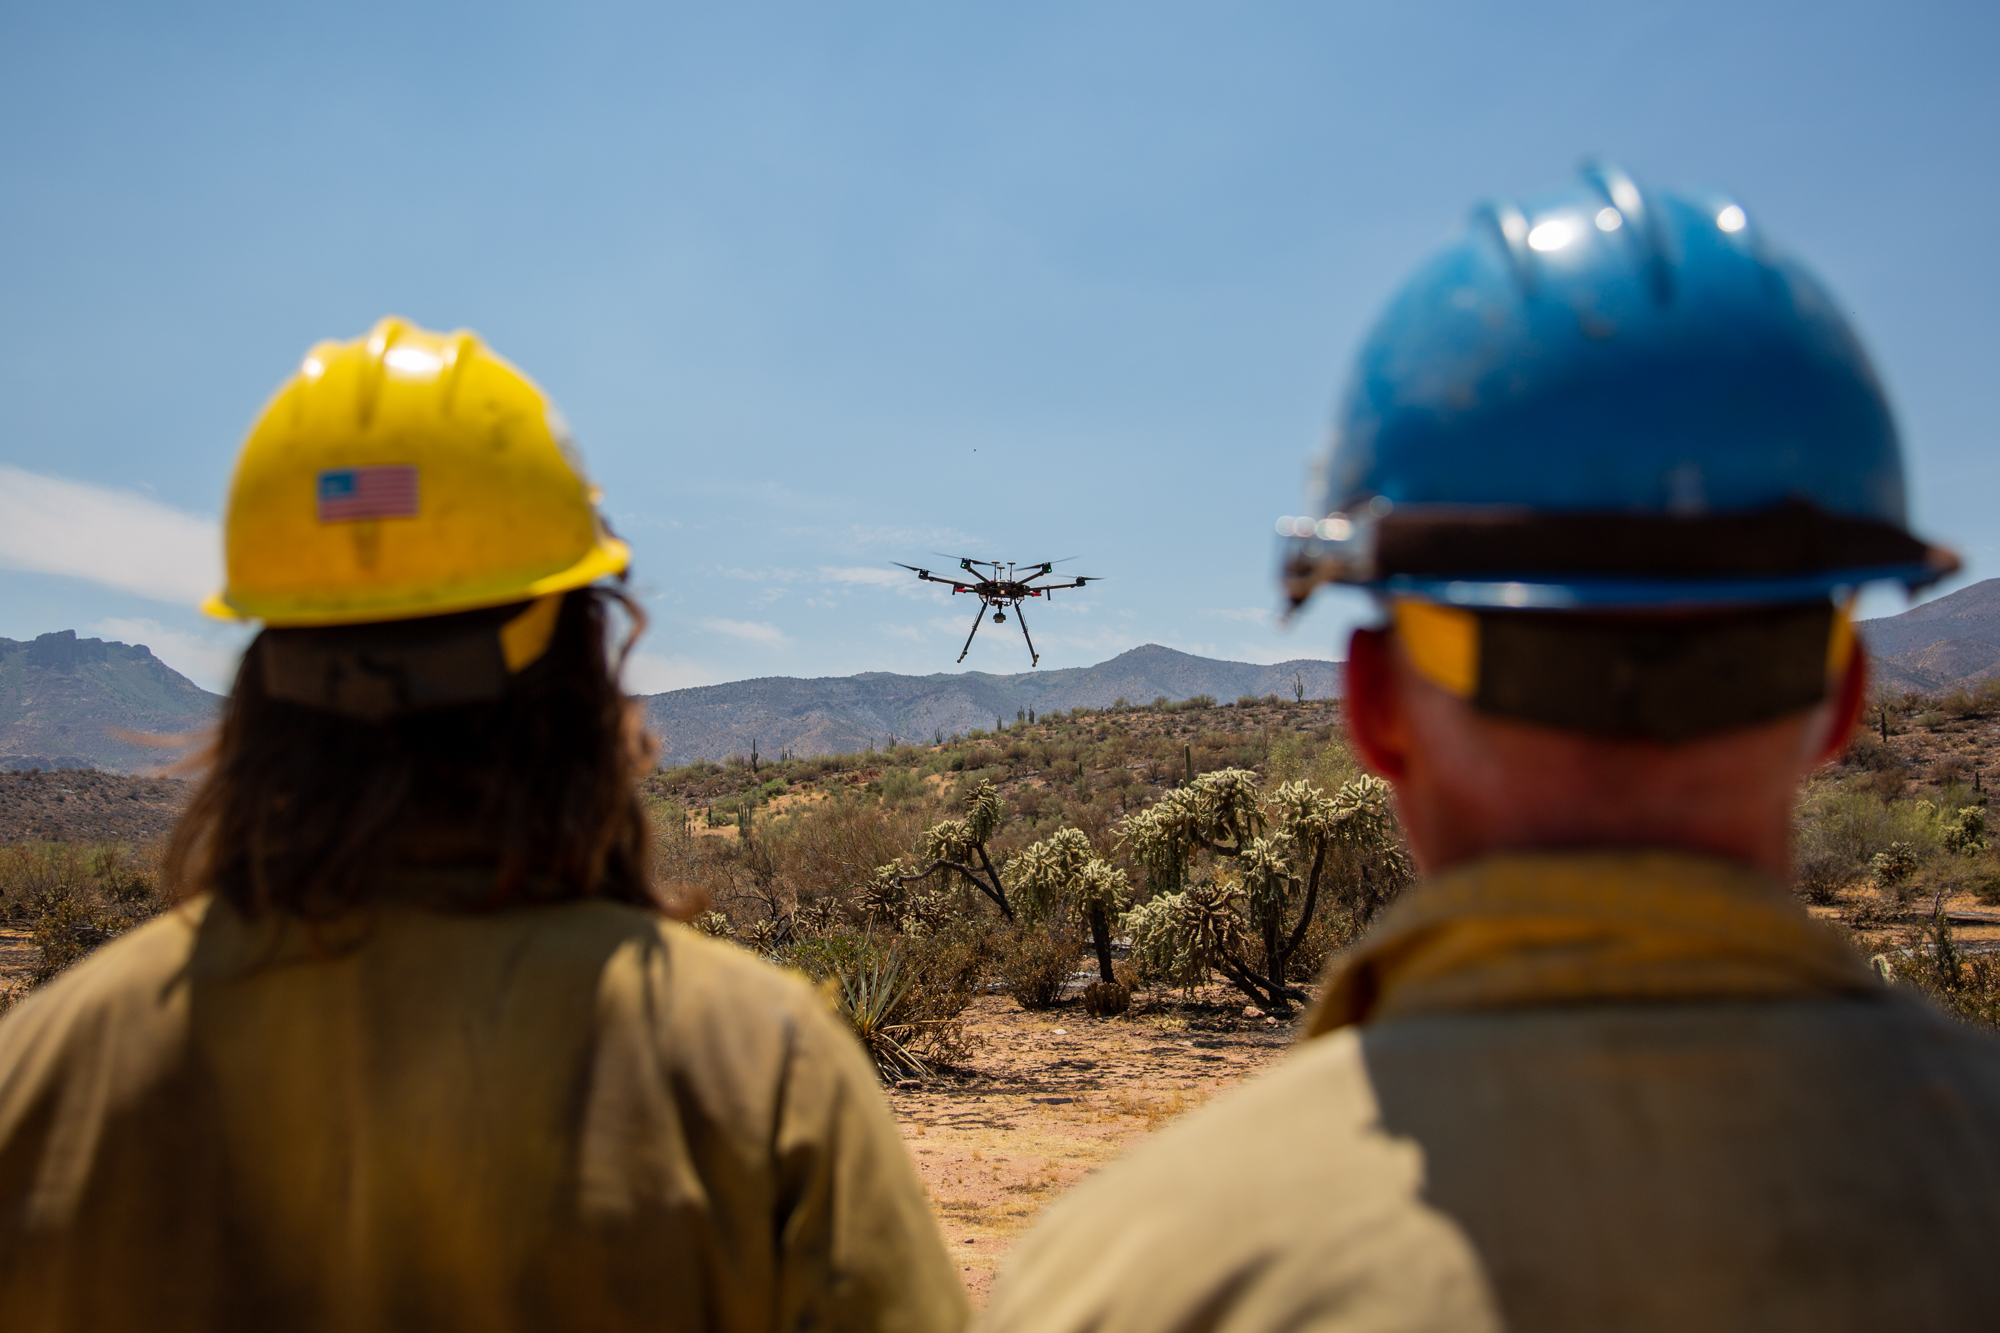 arizona-woodbury-fire-drone-use-1